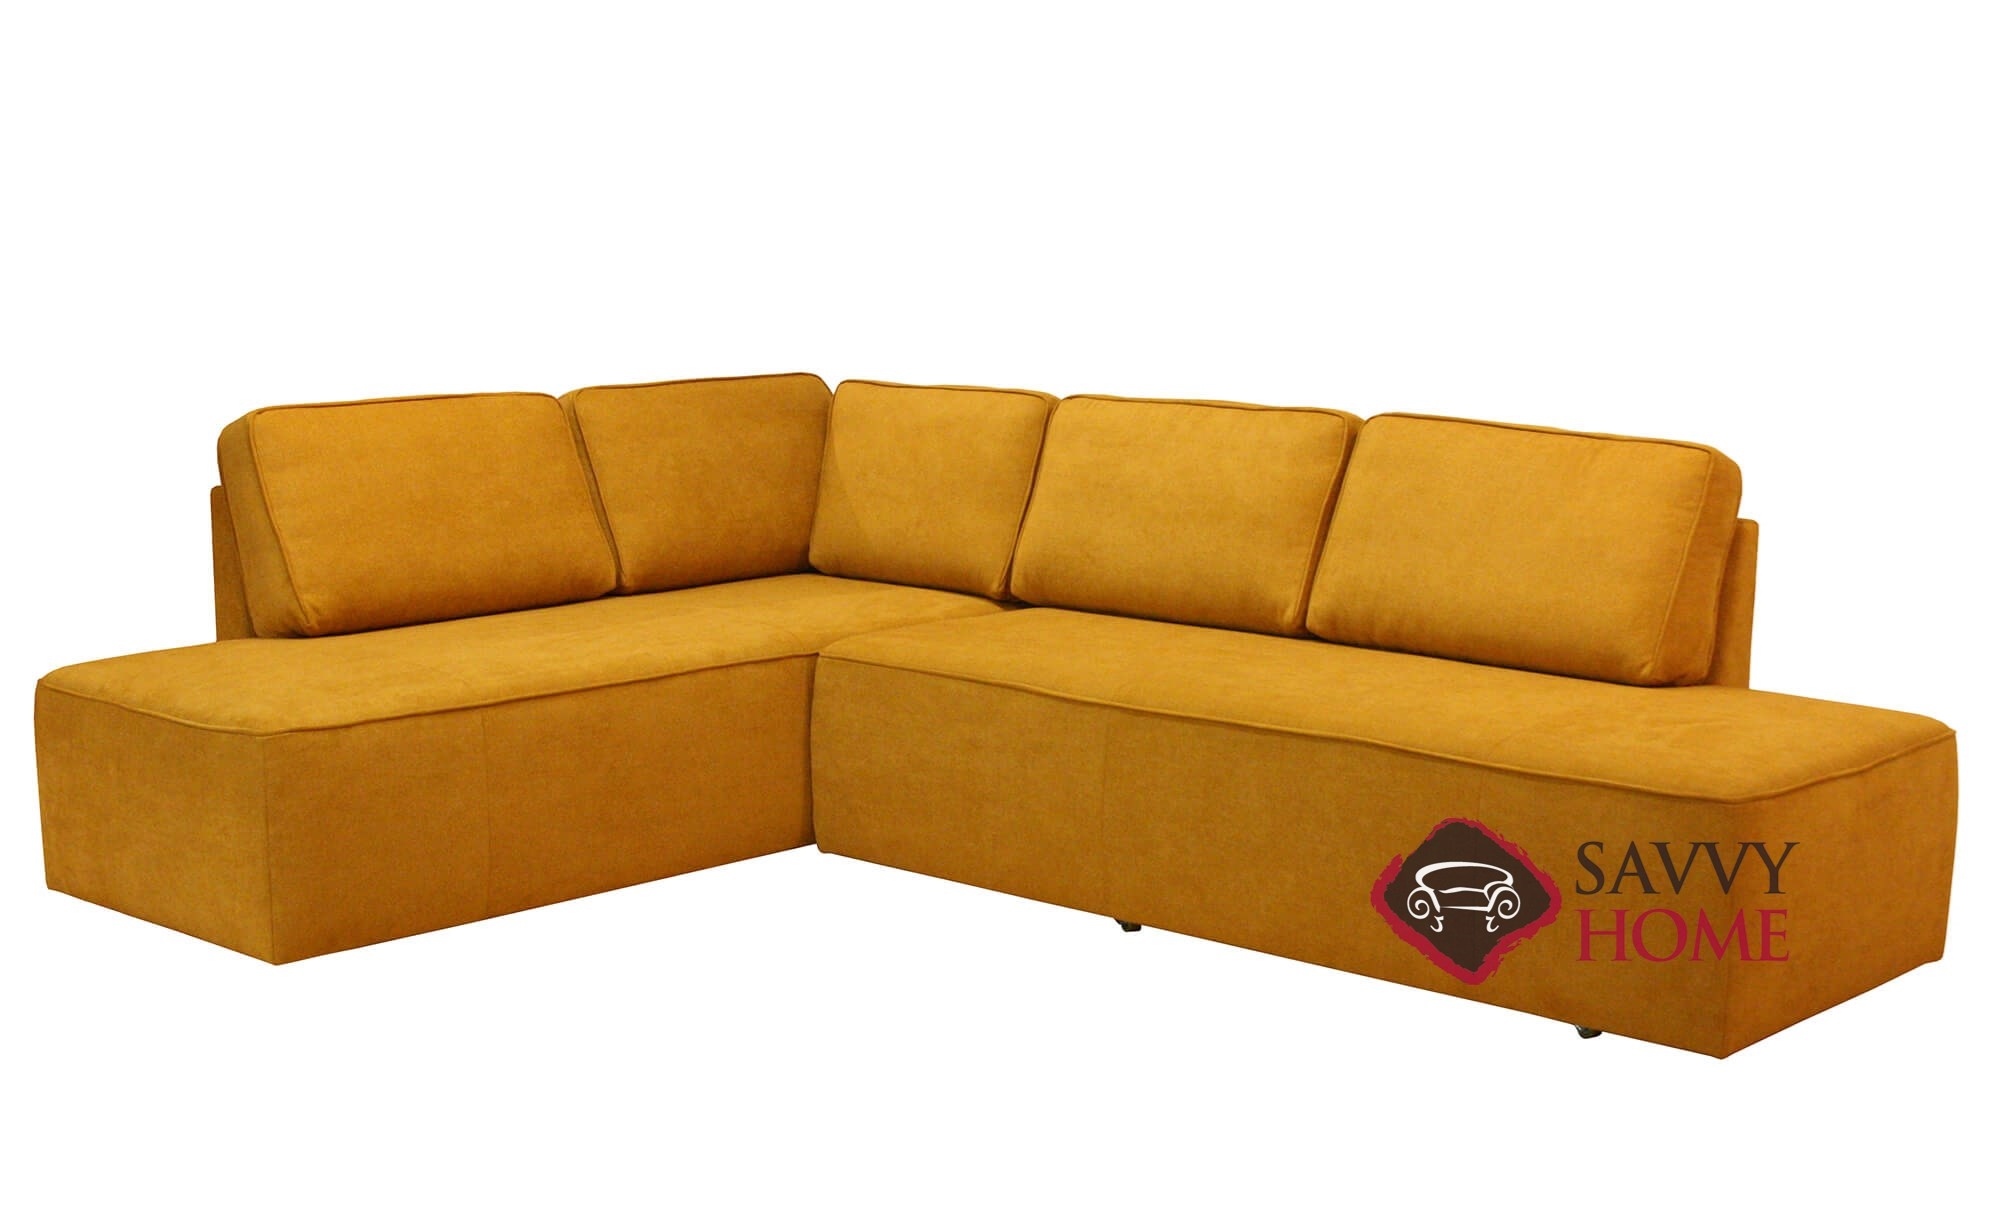 New York Chaise Sectional Queen Leather Sofa Bed with Storage by Luonto